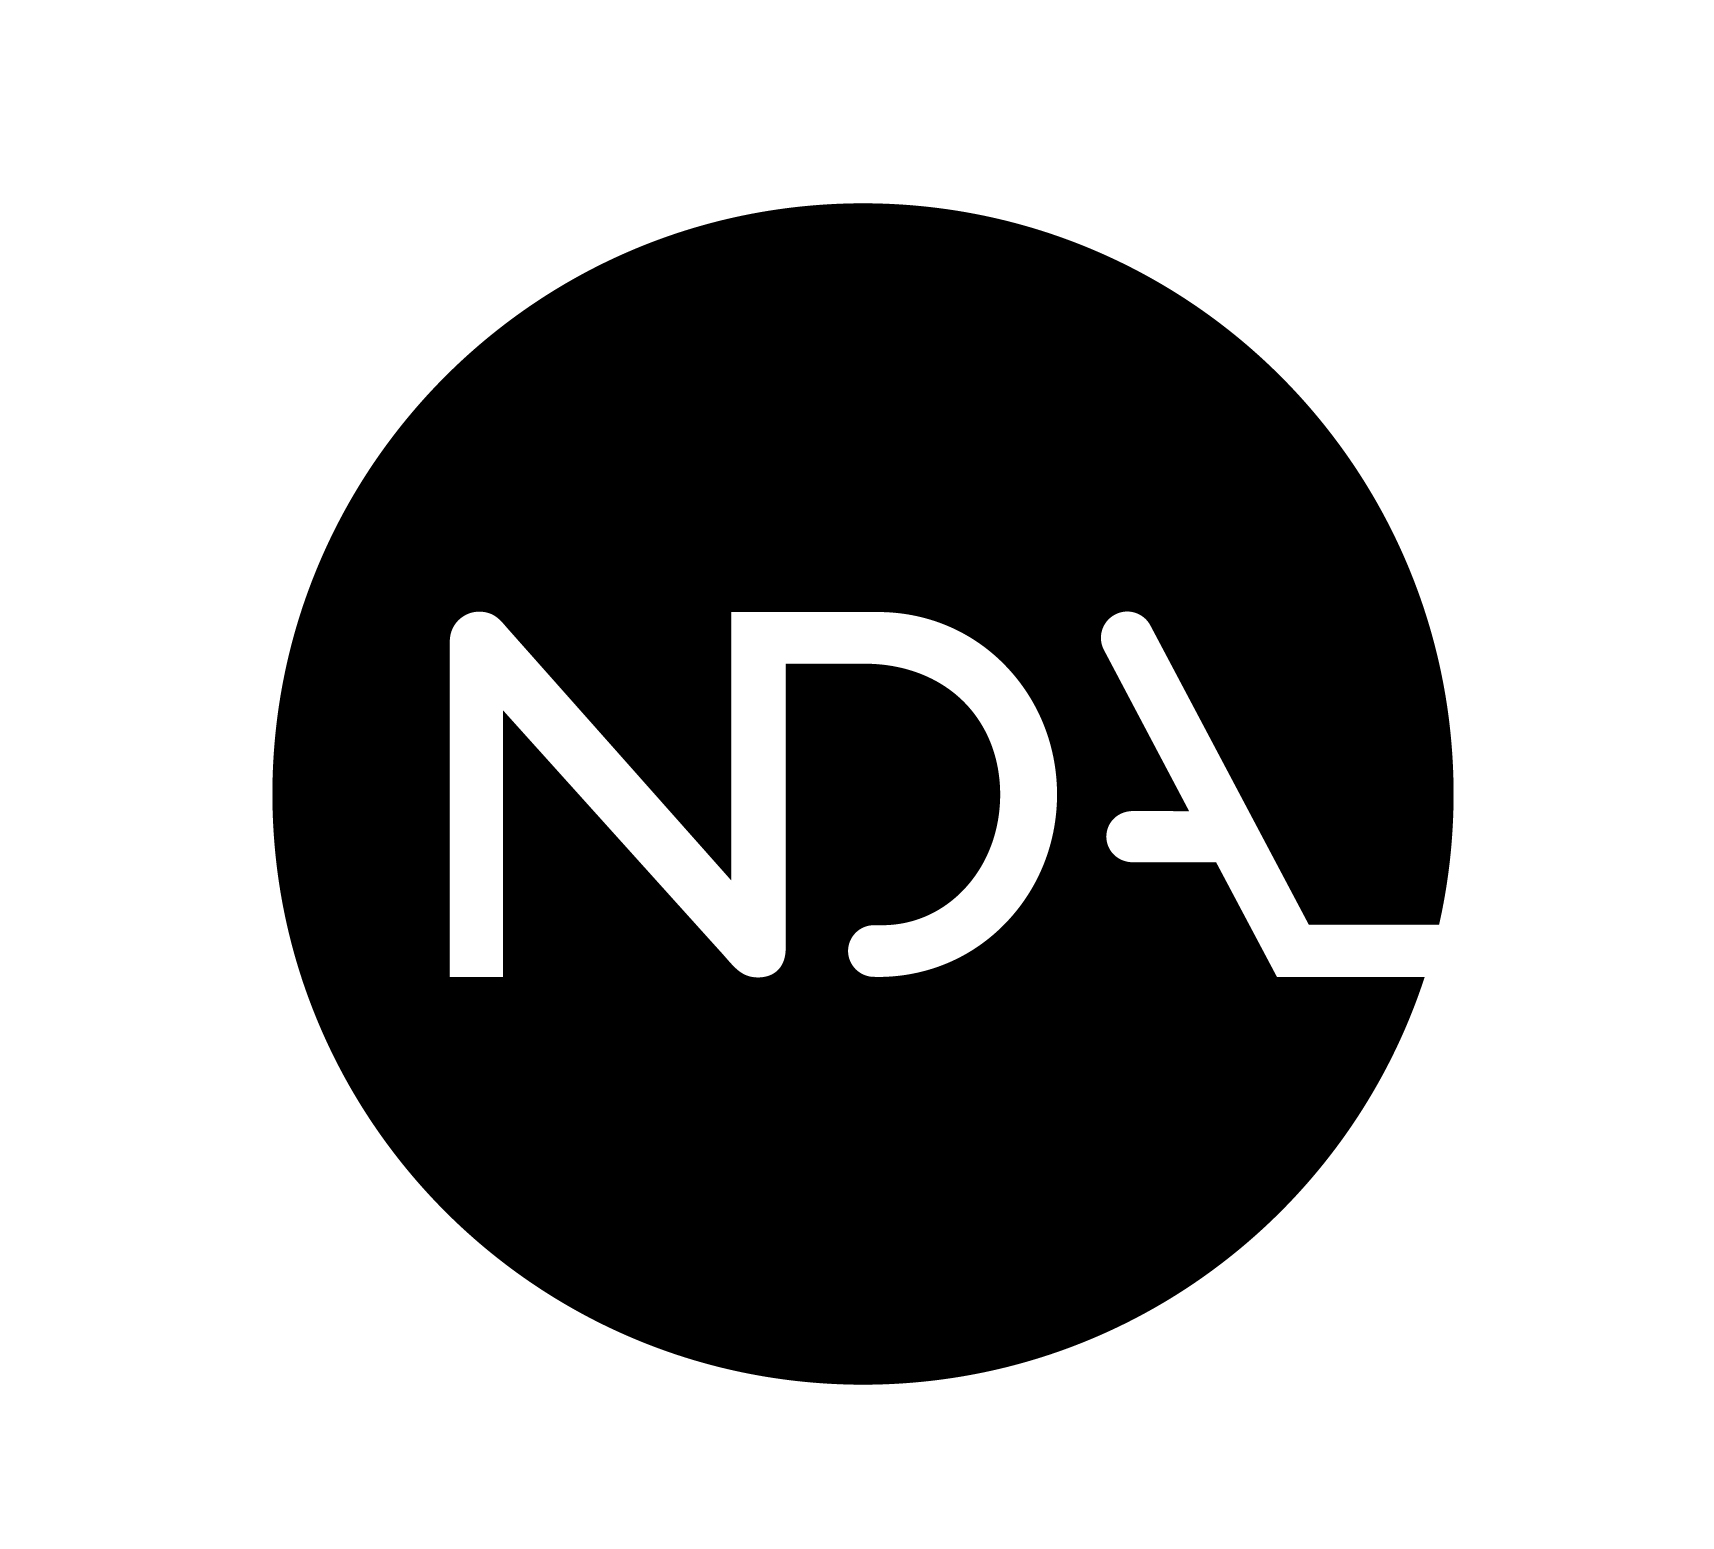 NDA final logo Black